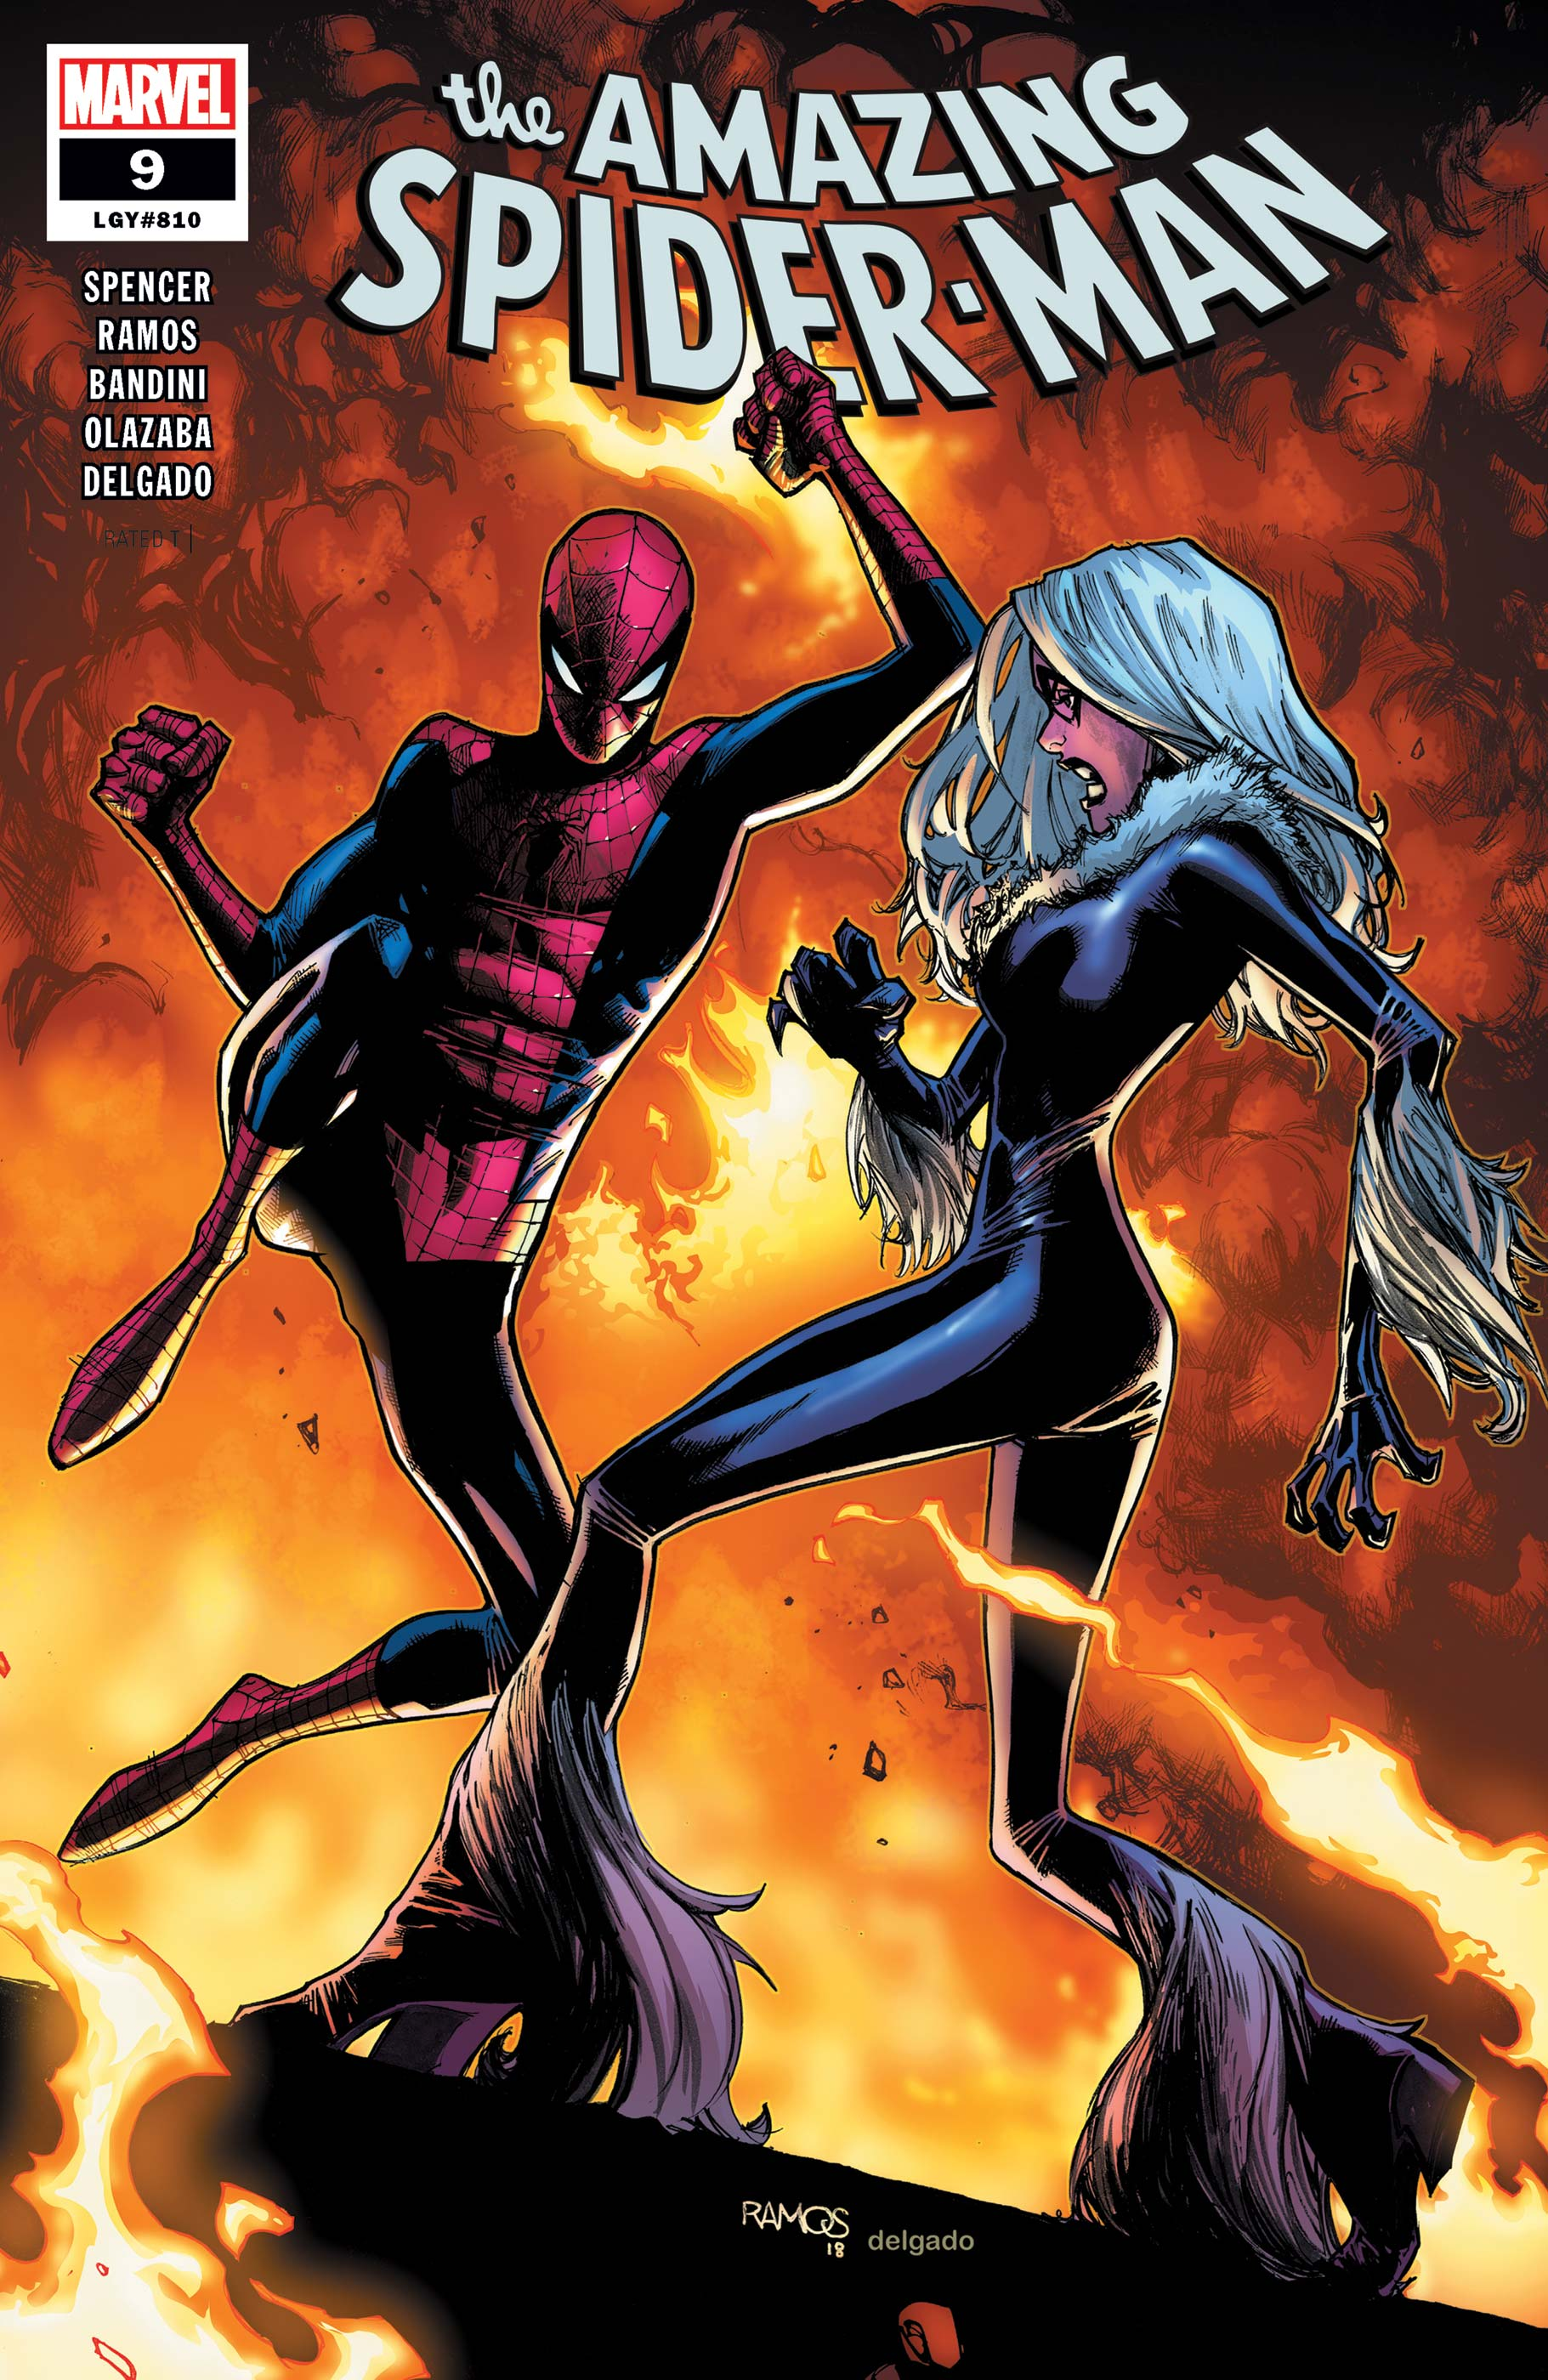 The Amazing Spider-Man (2018) #9